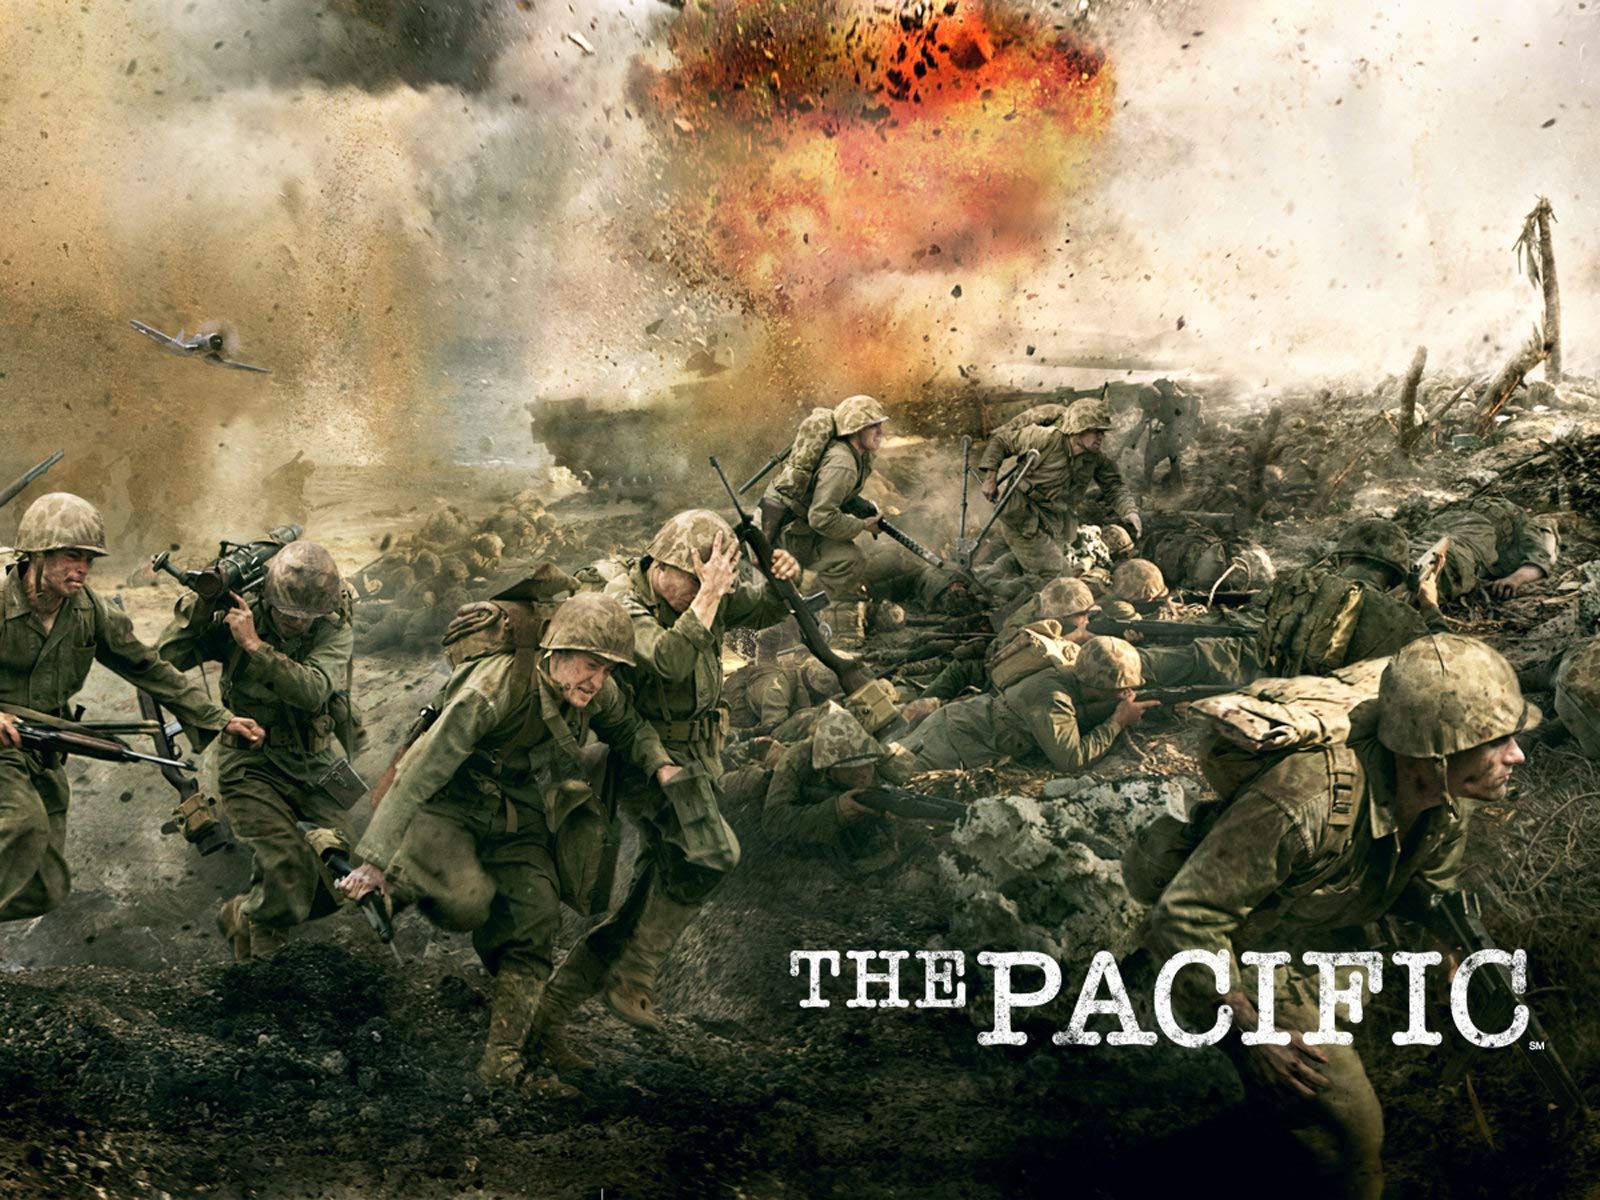 the pacific mini series watch online free